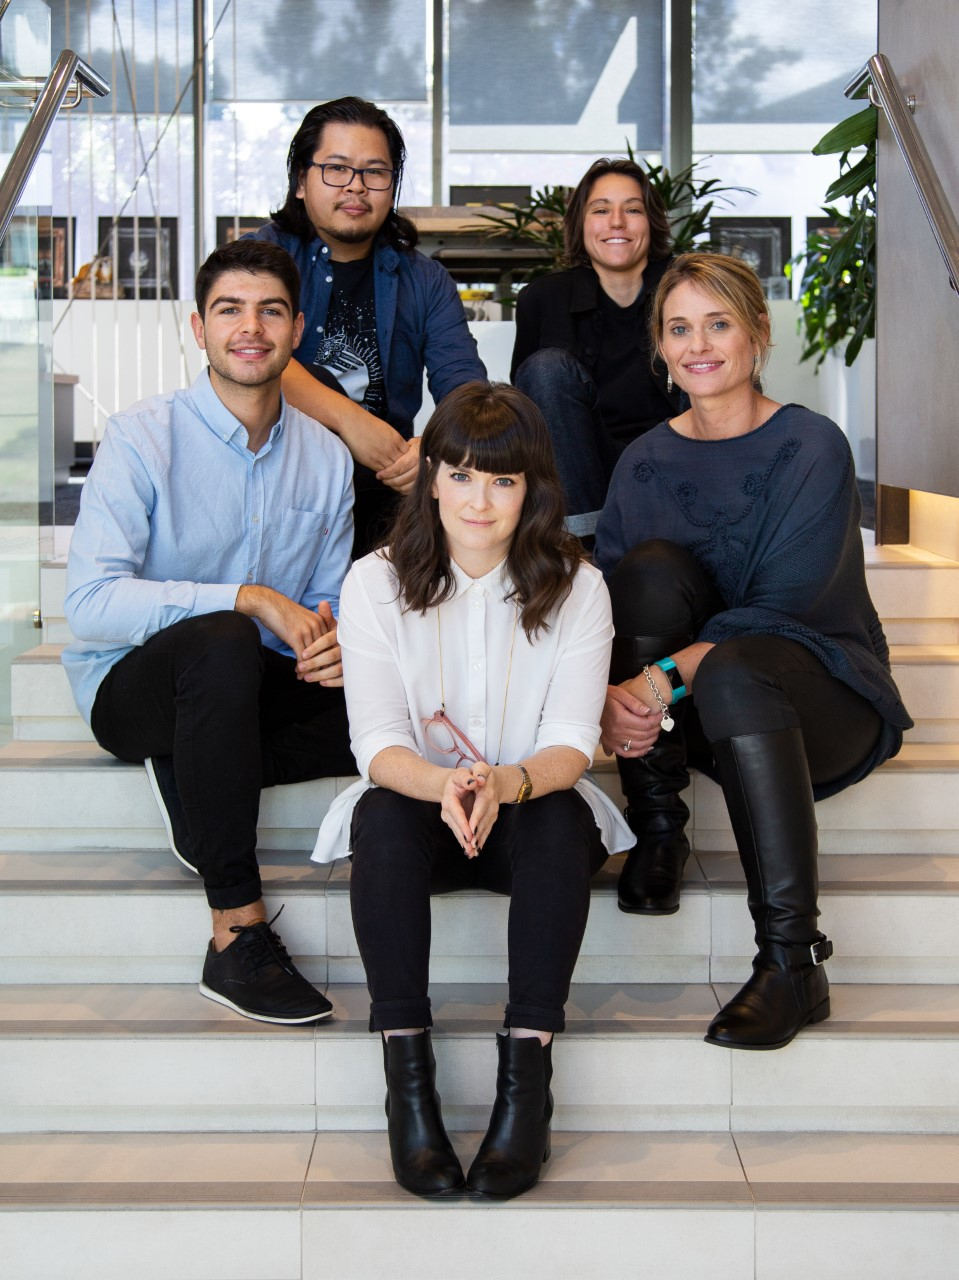 Meerkats promotes Rikki Burns to creative director and announces new hires